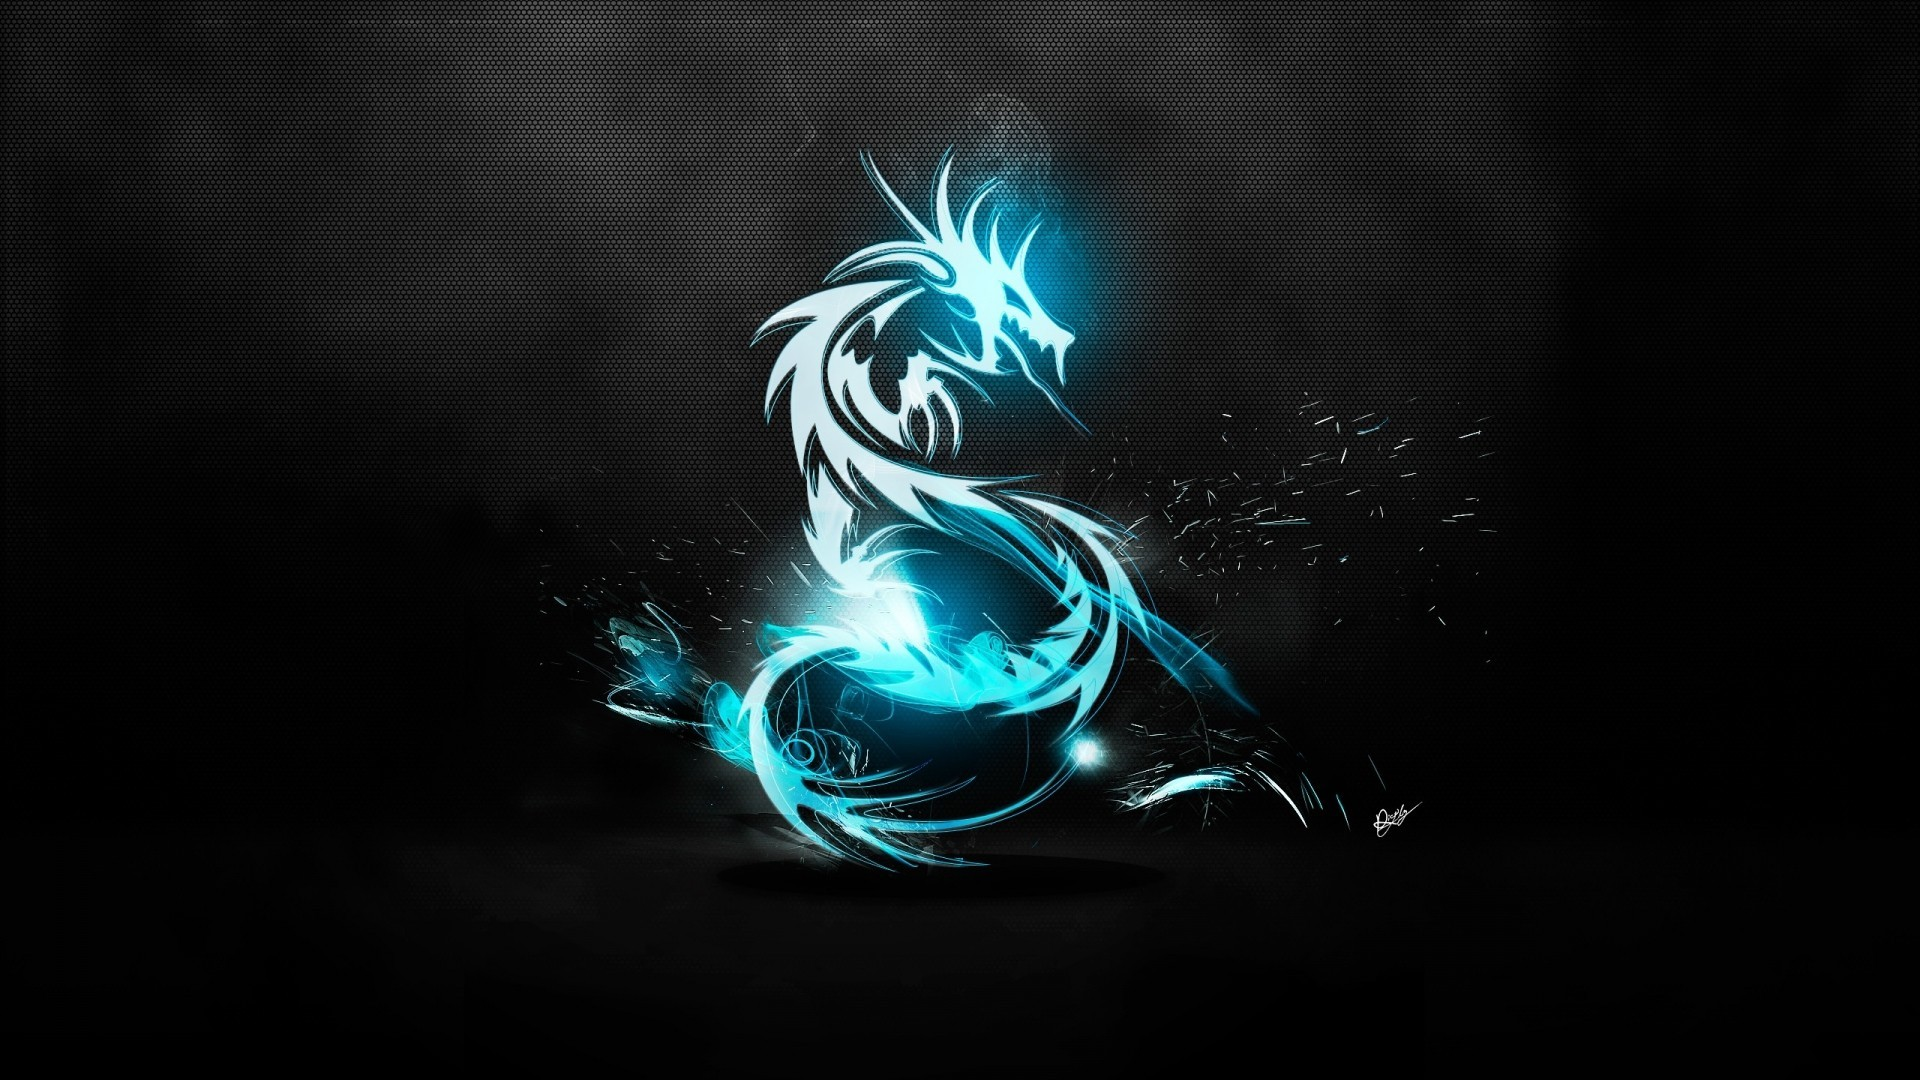 Dragon Cool Abstract Wallpapers 13221 Wallpaper Cool Walldiskpaper 1920x1080